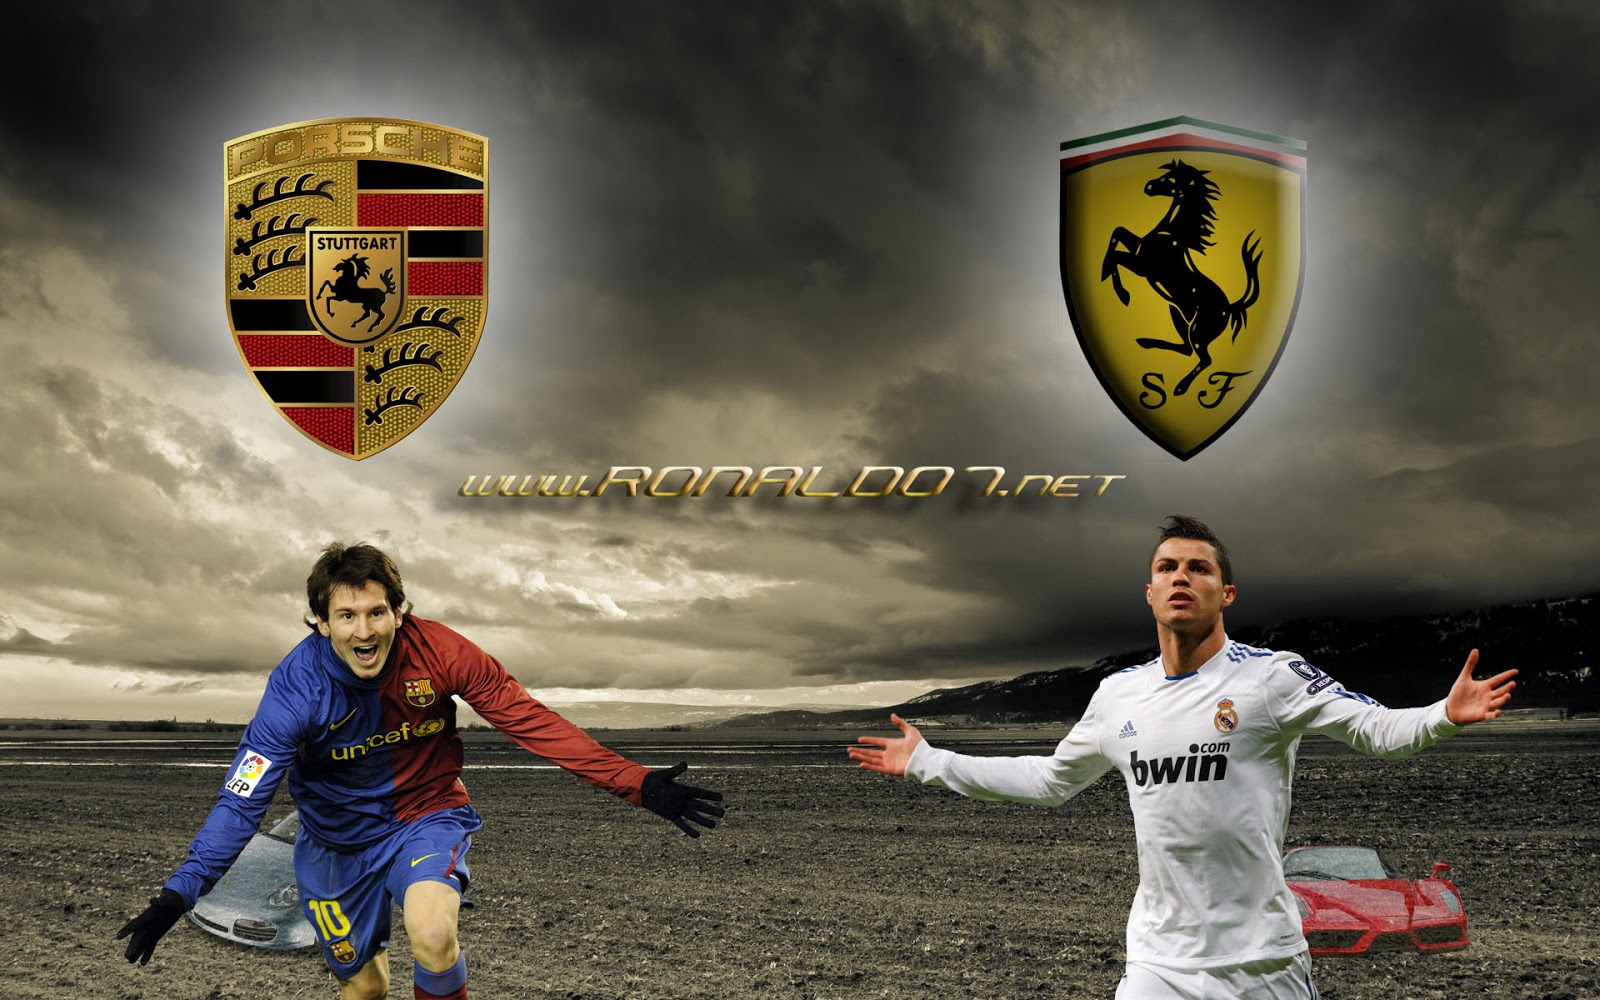 Galerry Wallpaper   Messi VS Ronaldo Wallpapers